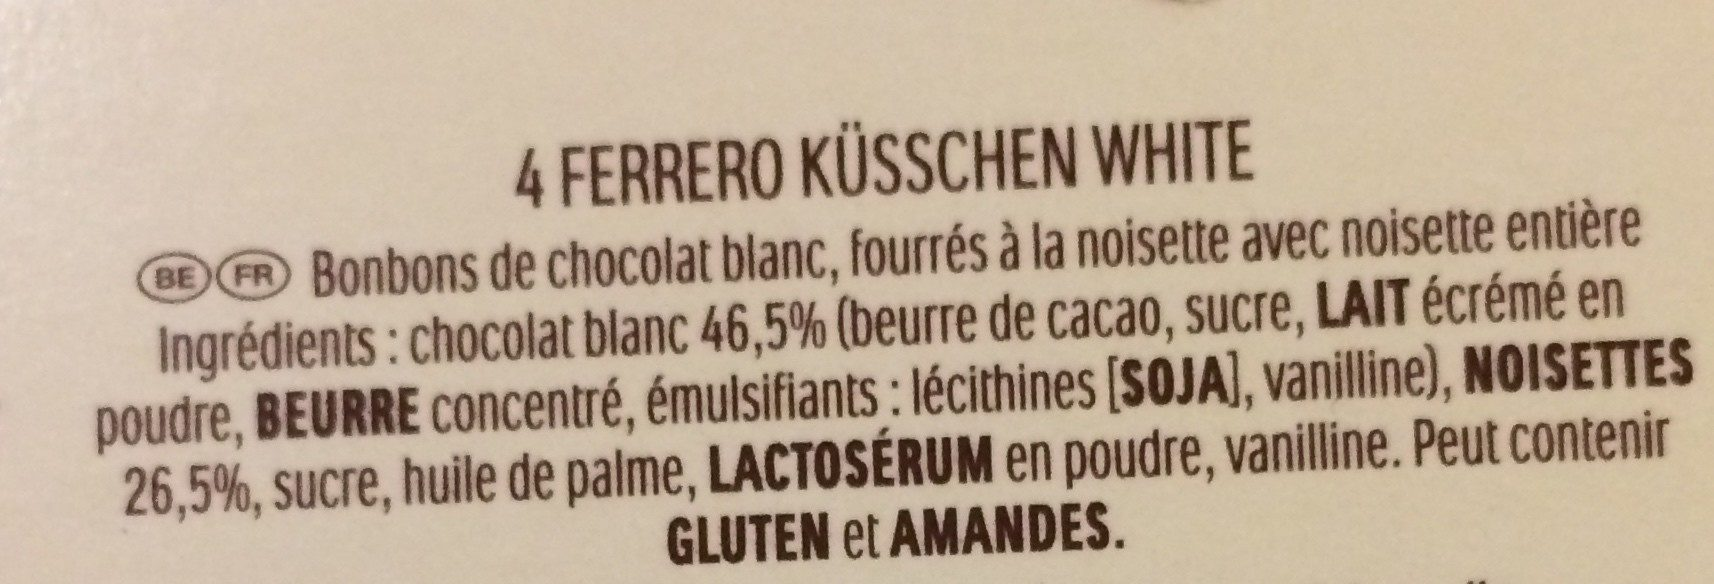 Calendrier de l avent - Ingredients